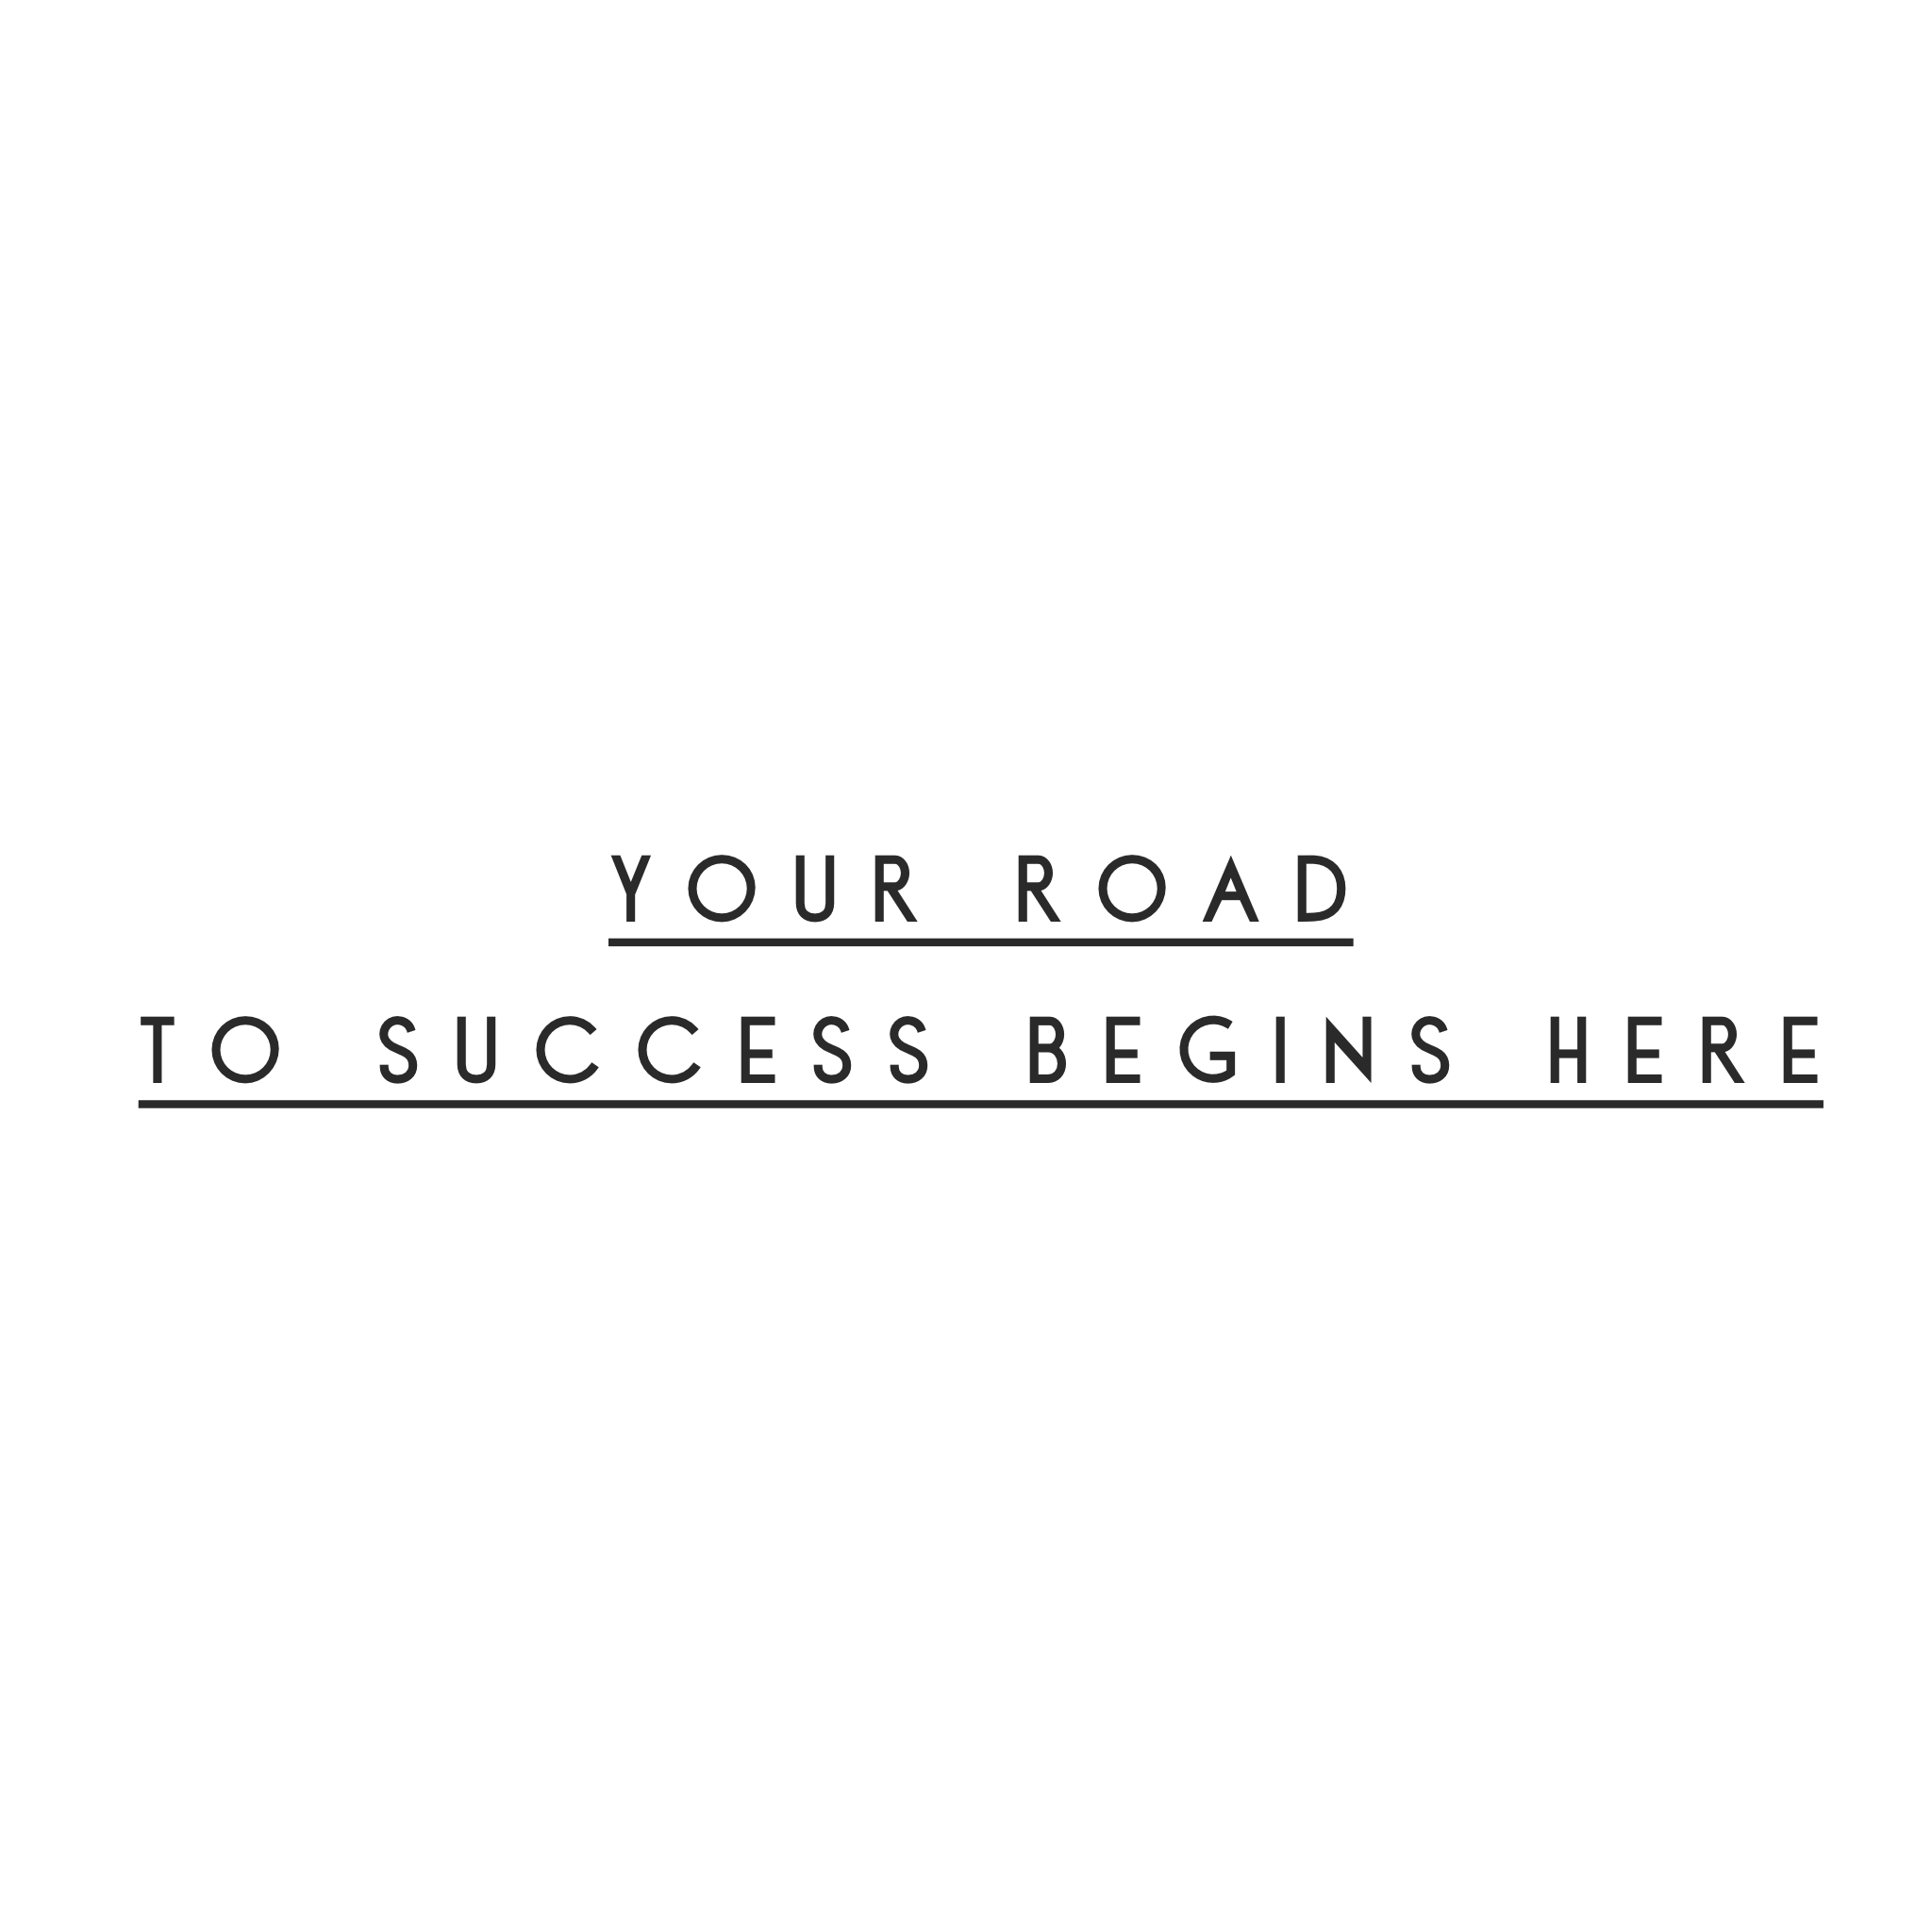 Your Road to Success Begins Here.PNG